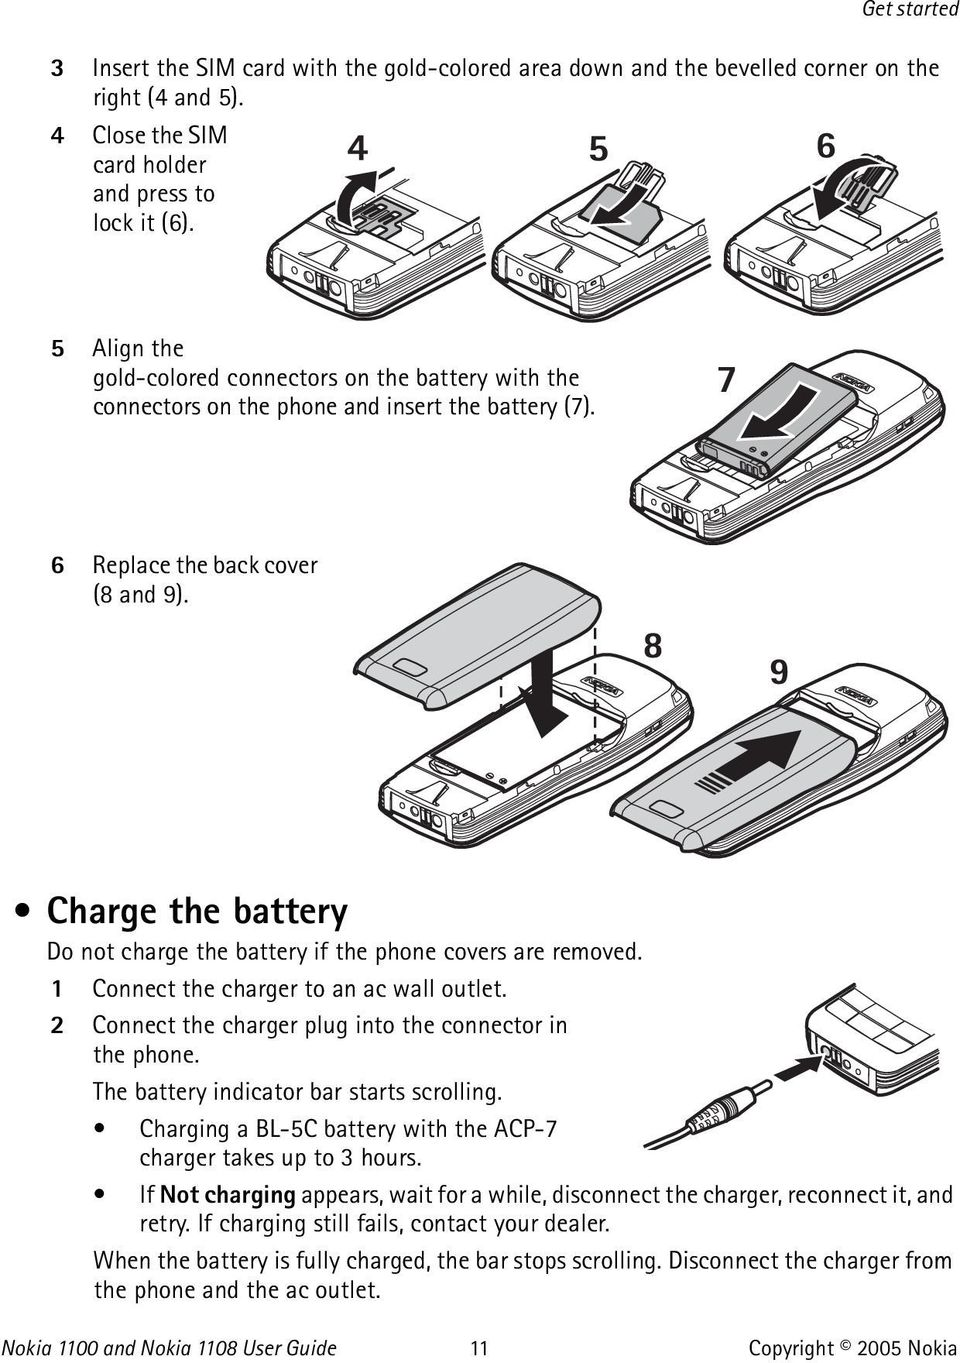 Charge the battery Do not charge the battery if the phone covers are removed. 1 Connect the charger to an ac wall outlet. 2 Connect the charger plug into the connector in the phone.